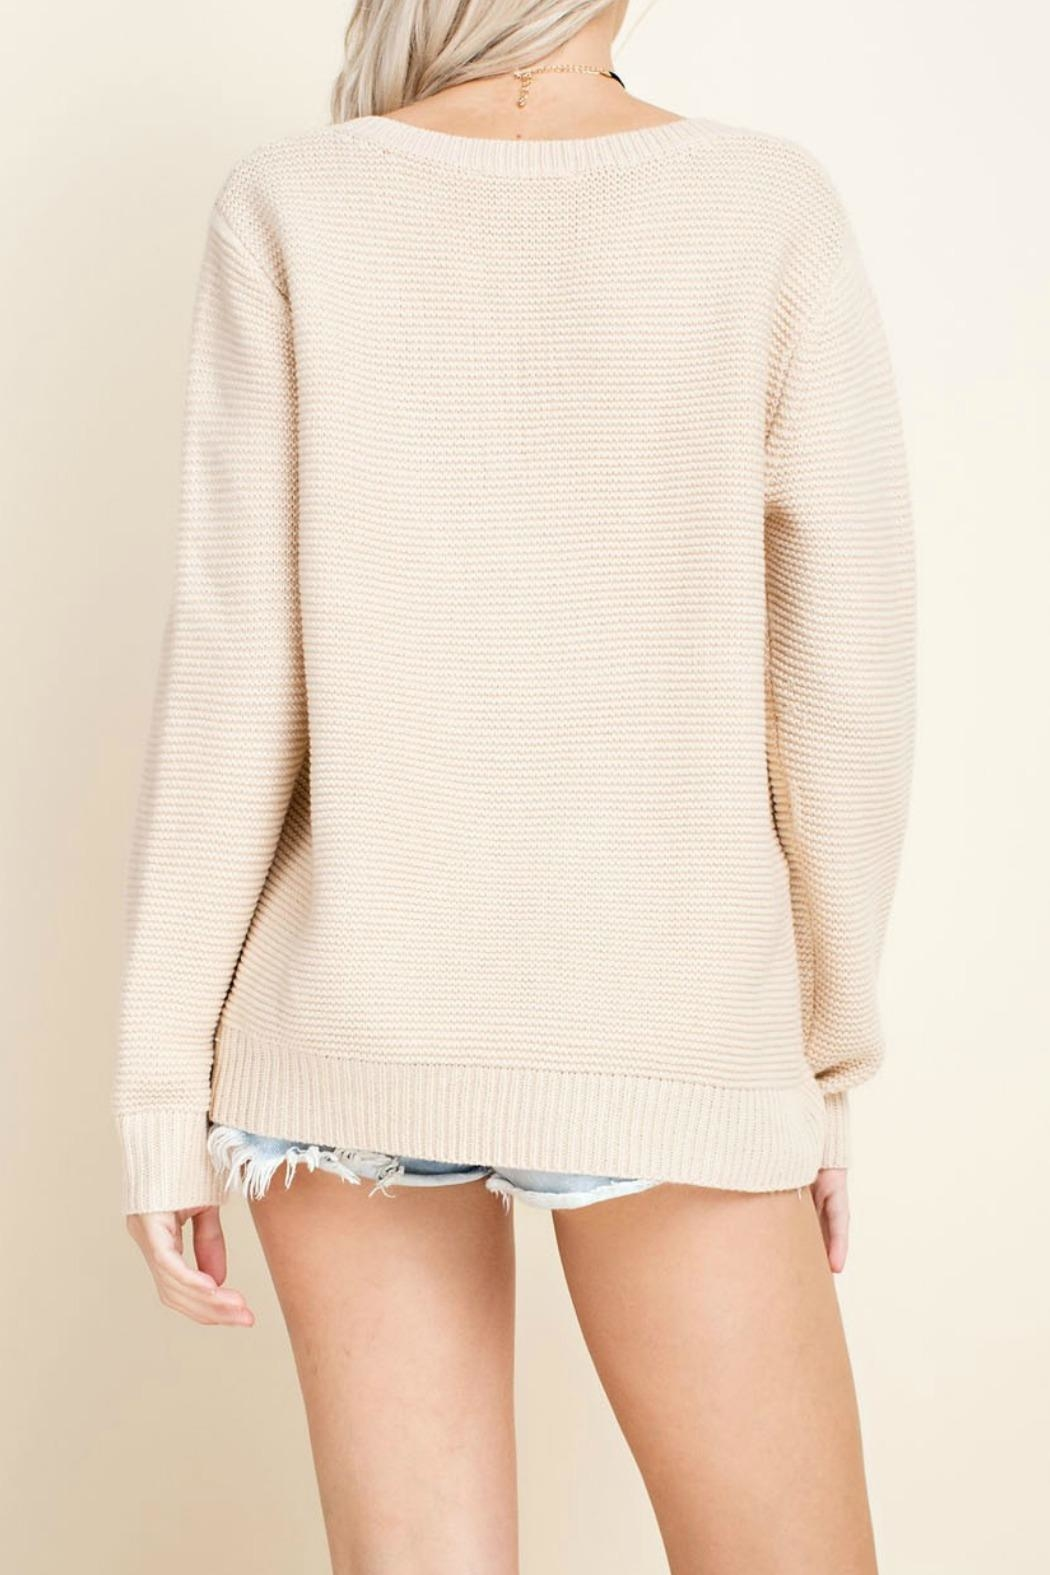 Blushing Heart Cream V-Neck Sweater - Front Full Image